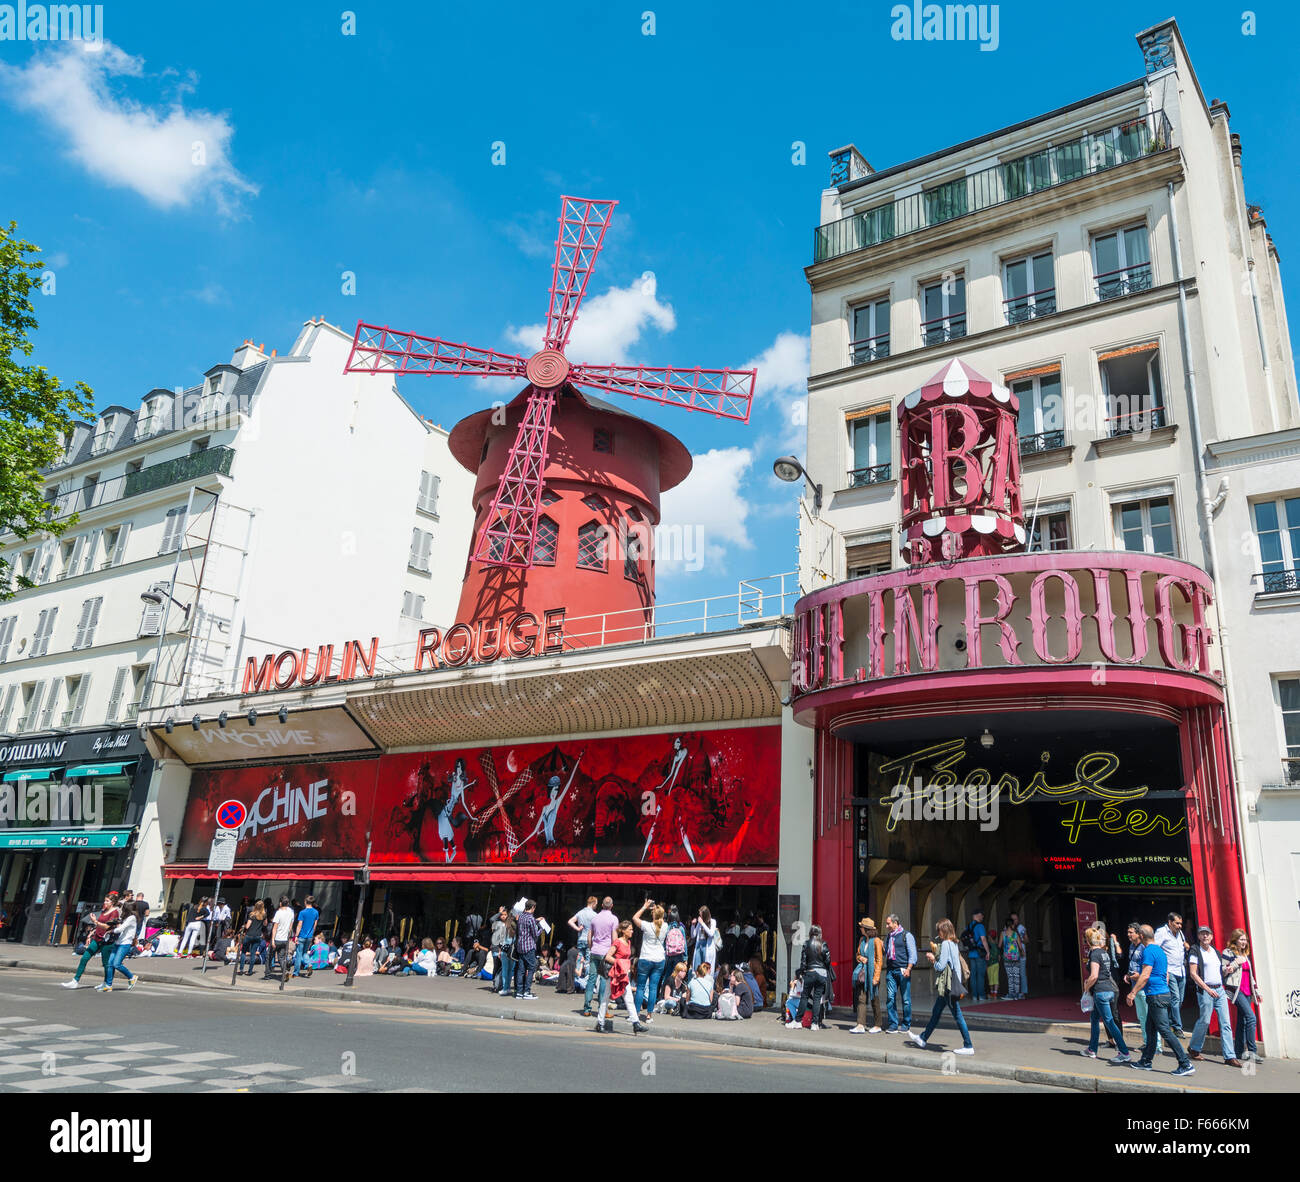 Moulin Rouge Stock Photos & Moulin Rouge Stock Images